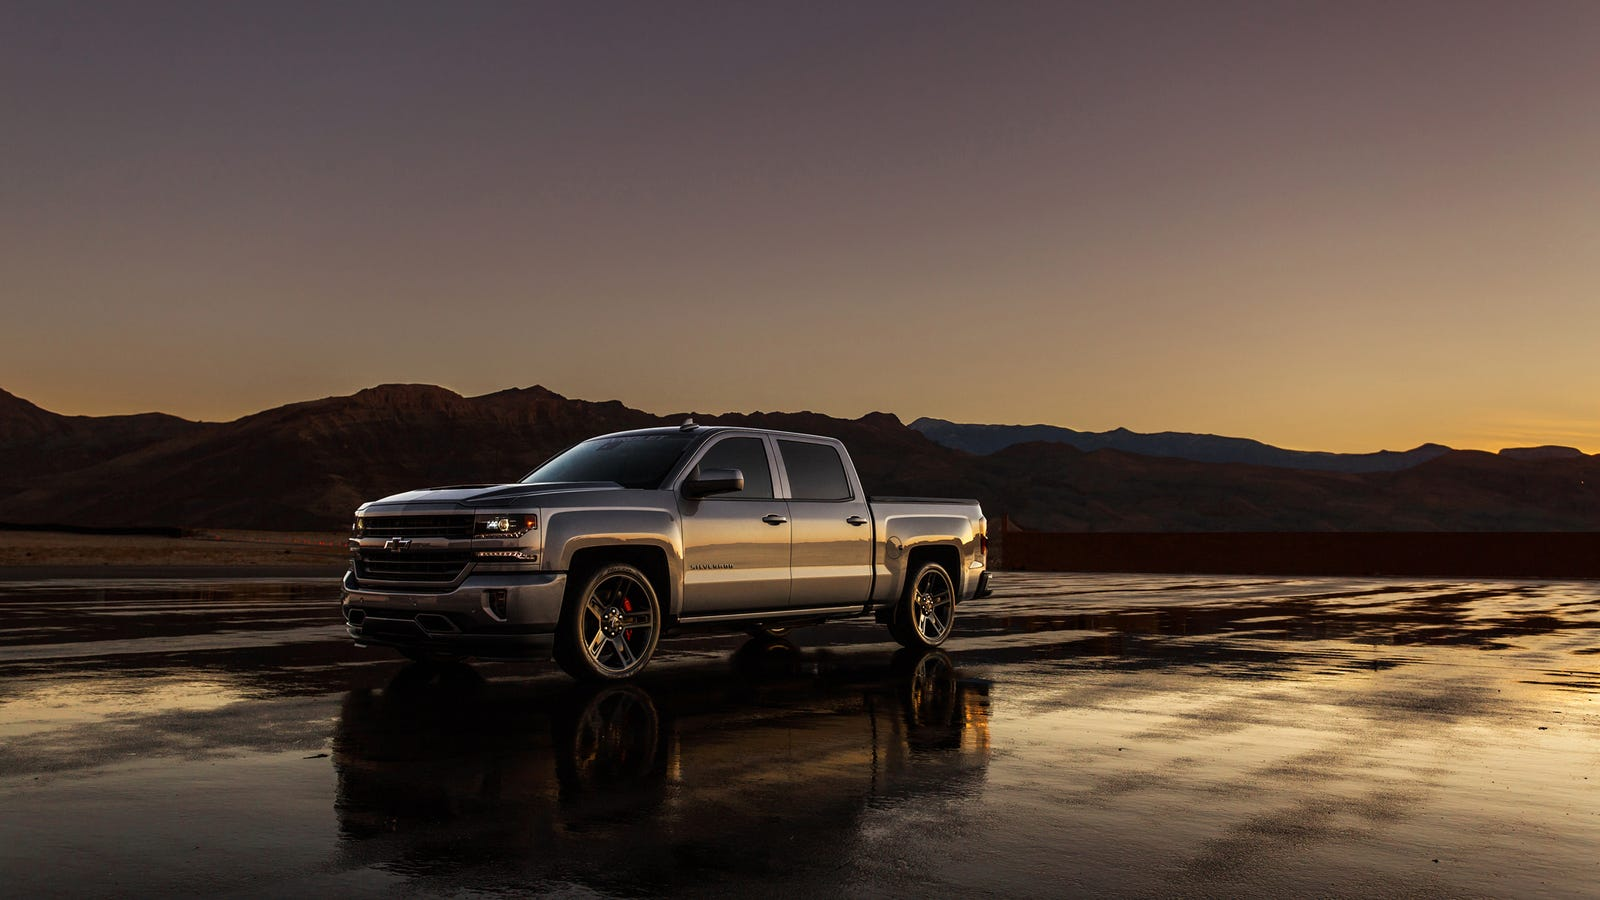 The 2018 Chevy Silverado Performance Concept Has A Battle-Ready Supercharged V8 Heart Of Fury